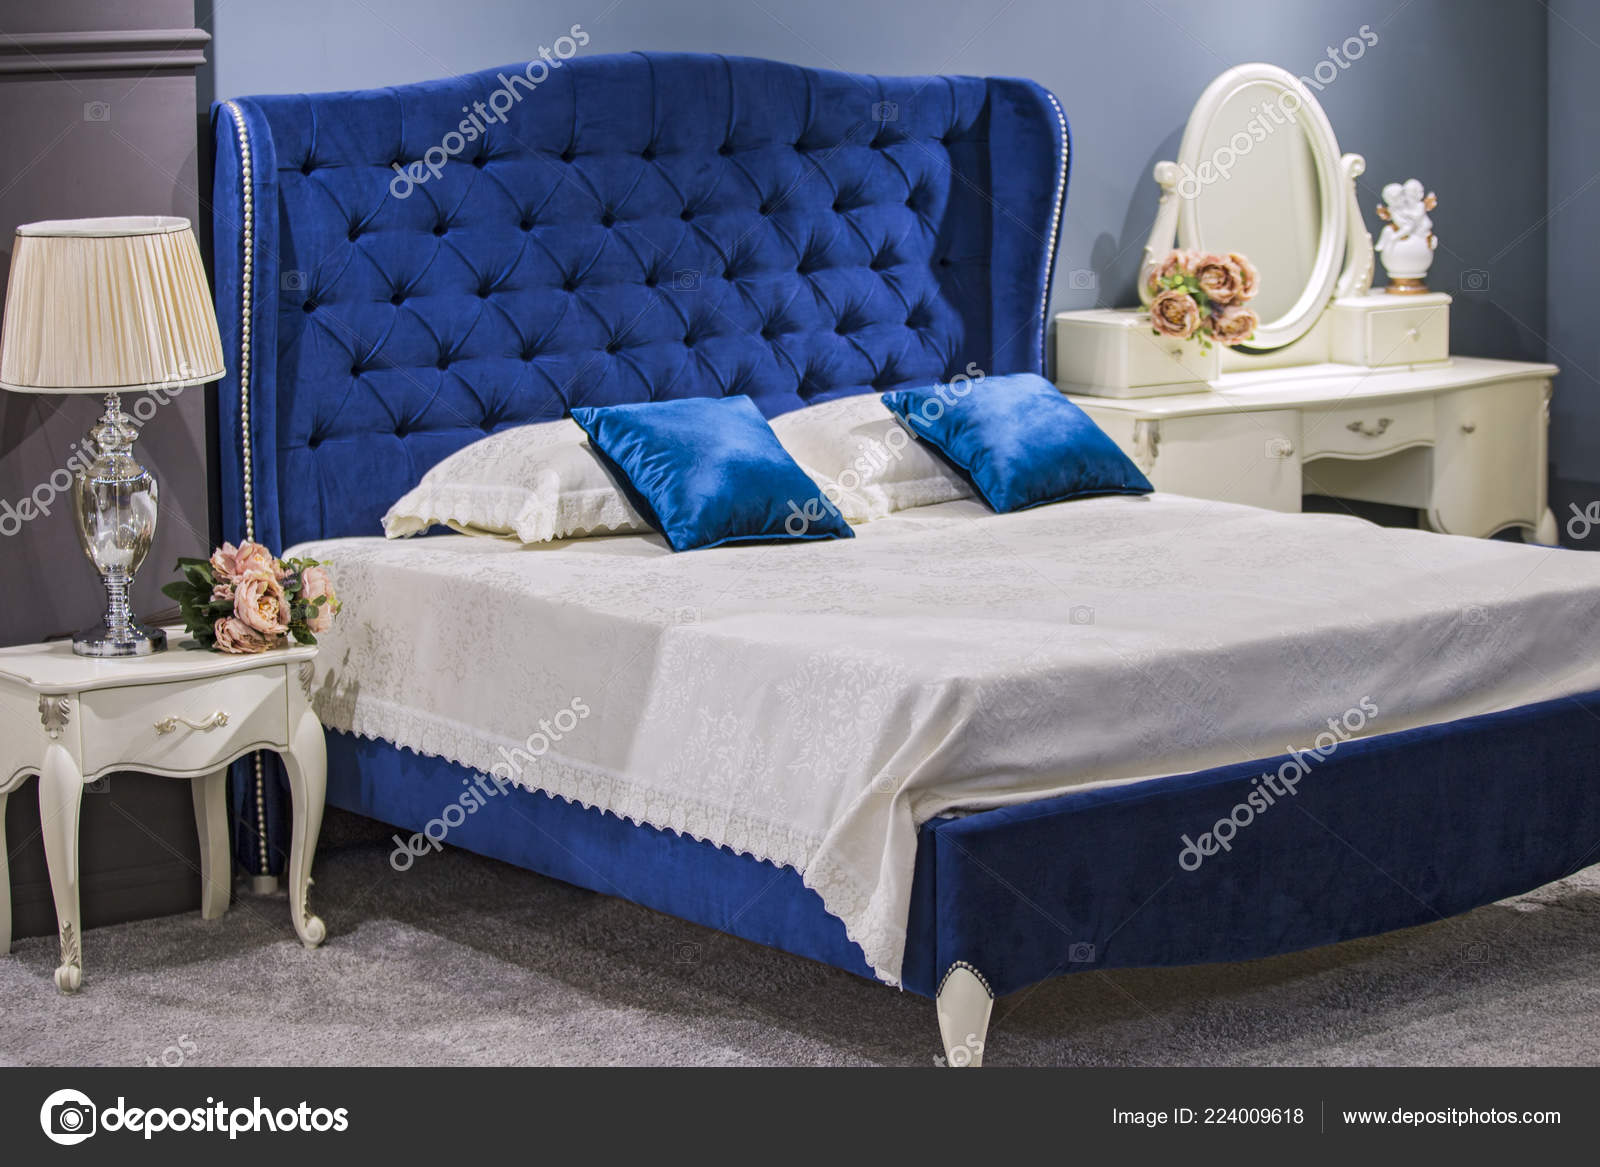 Luxury Royal Bedroom Antique Style Blue Velvet Bed White Nightstand Stock Photo Image By C Olga Prava 224009618